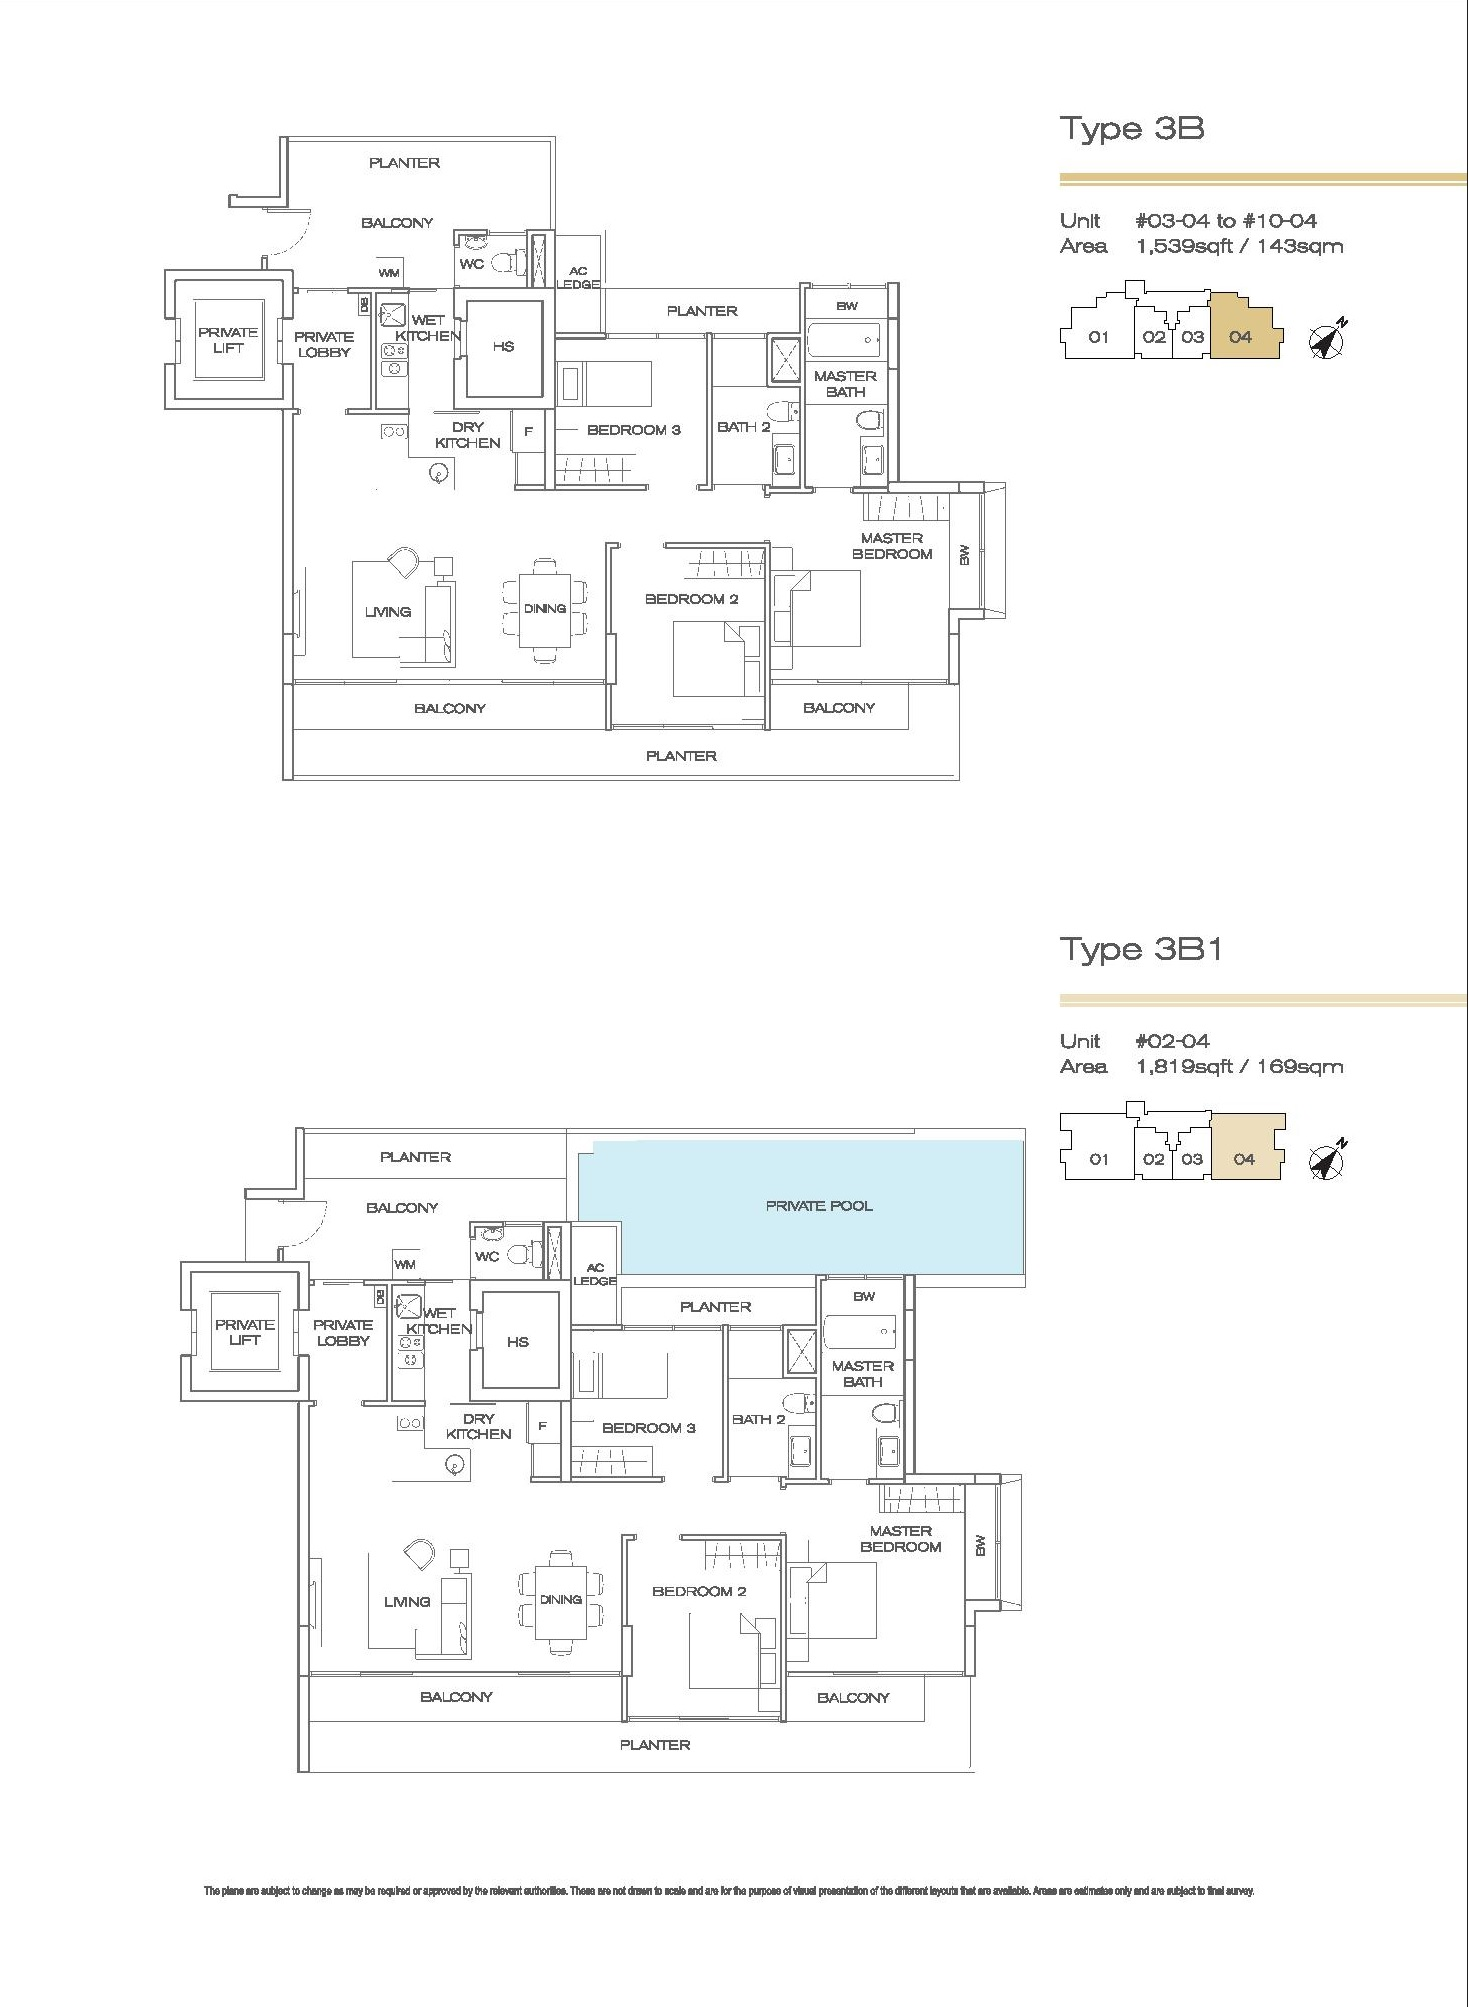 Three Balmoral 3 Bedroom Type 3B, 3B1 Floor Plans